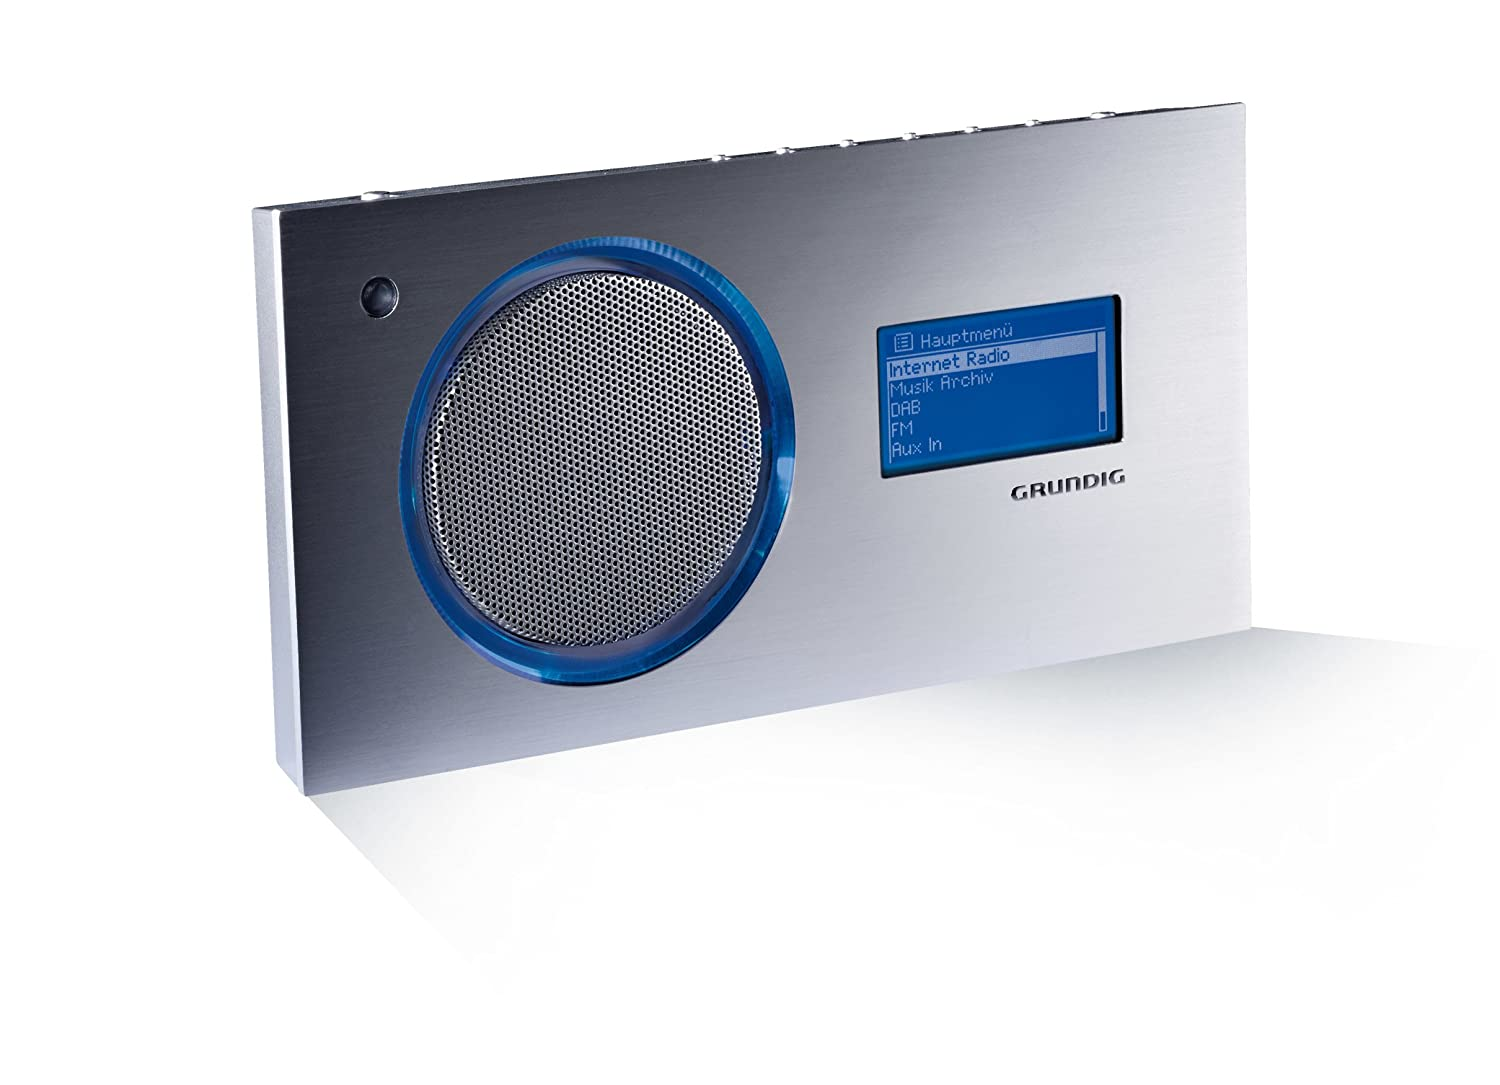 Grundig Cosmopolit 7 A WEB Portable Stereo ( Digital Audio Broadcast  (DAB),MP3 Playback,Internet Radio ): Amazon.co.uk: TV